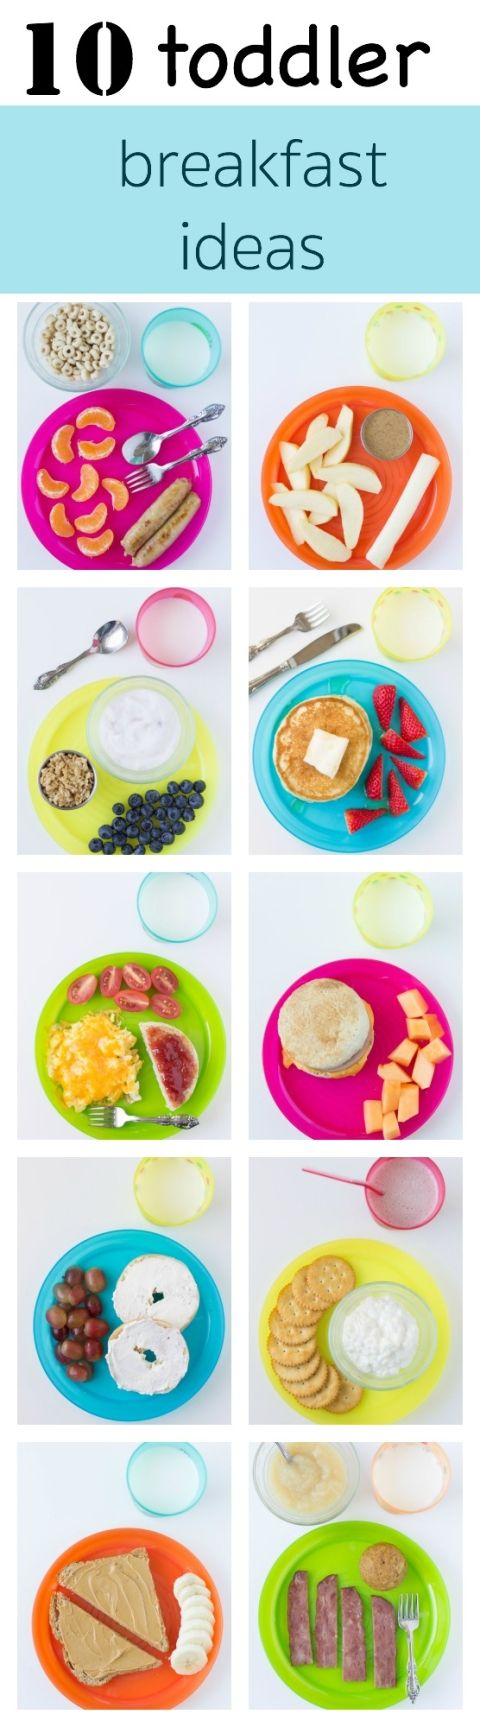 10 Toddler Breakfast Ideas To Inspire Your Busy Mornings If Toddlers Eating Habits Are